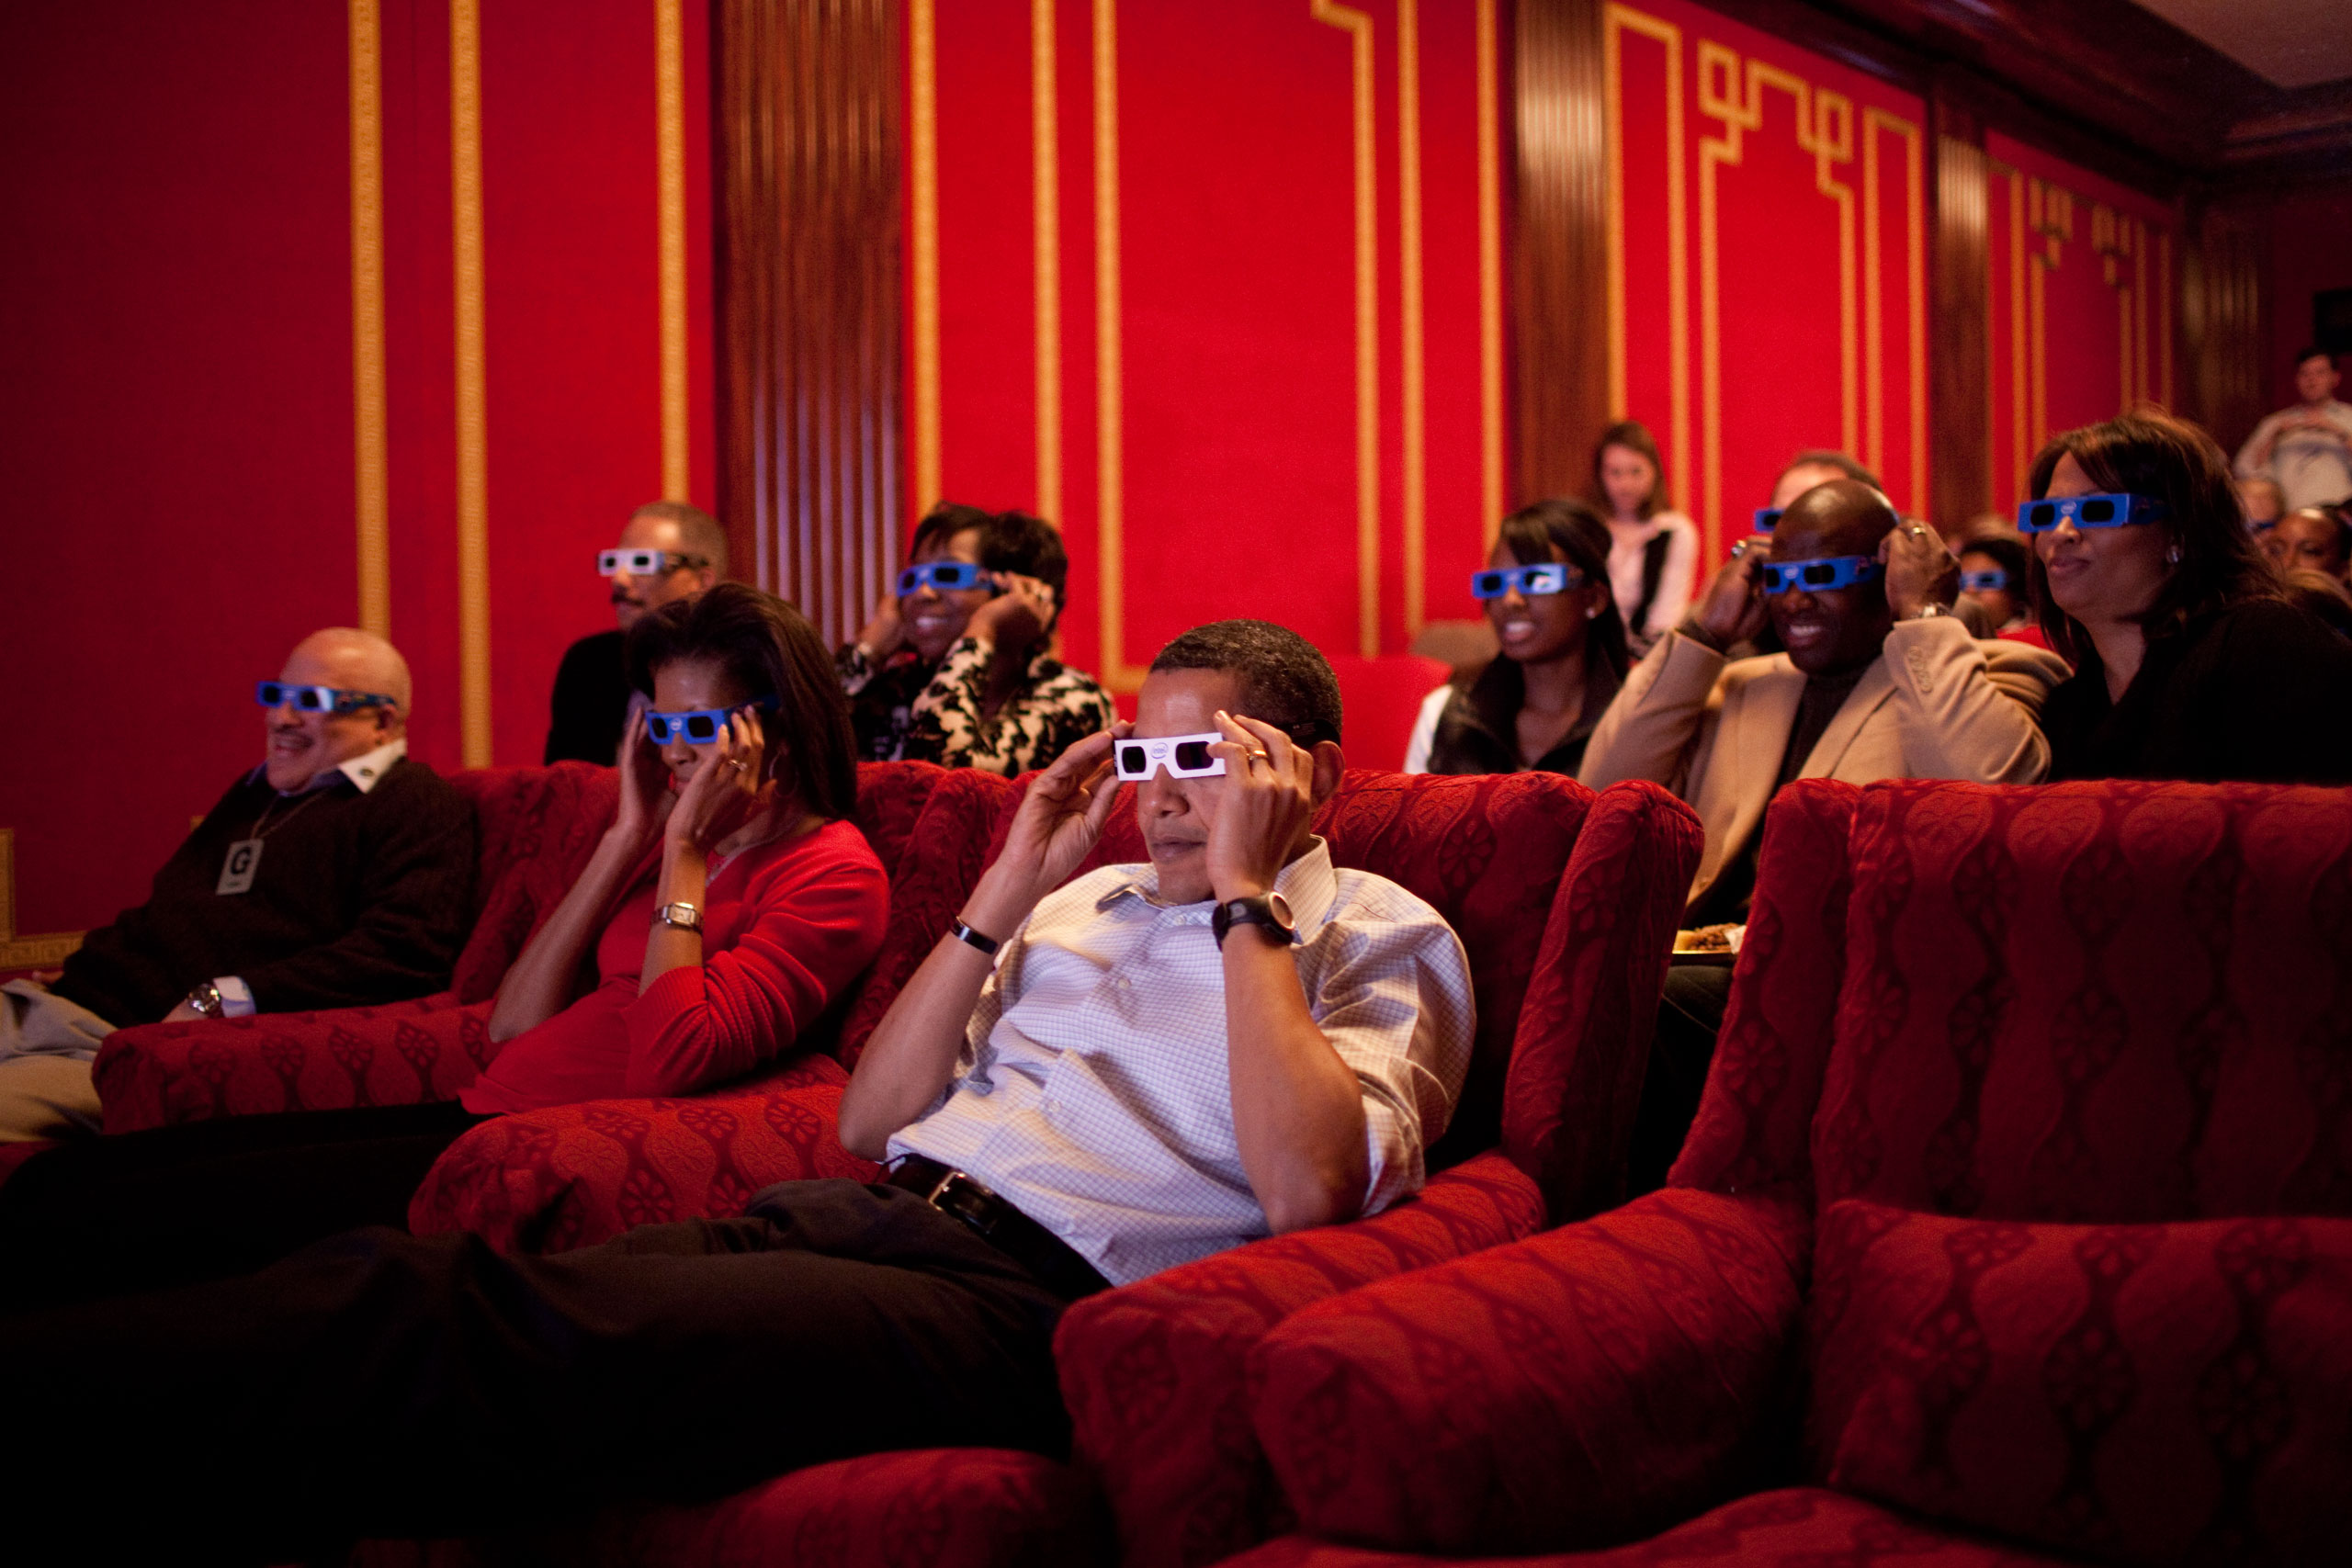 The President and First Lady, along with friends and family, watch a 3D commercial during the Super Bowl, Feb. 1, 2009.